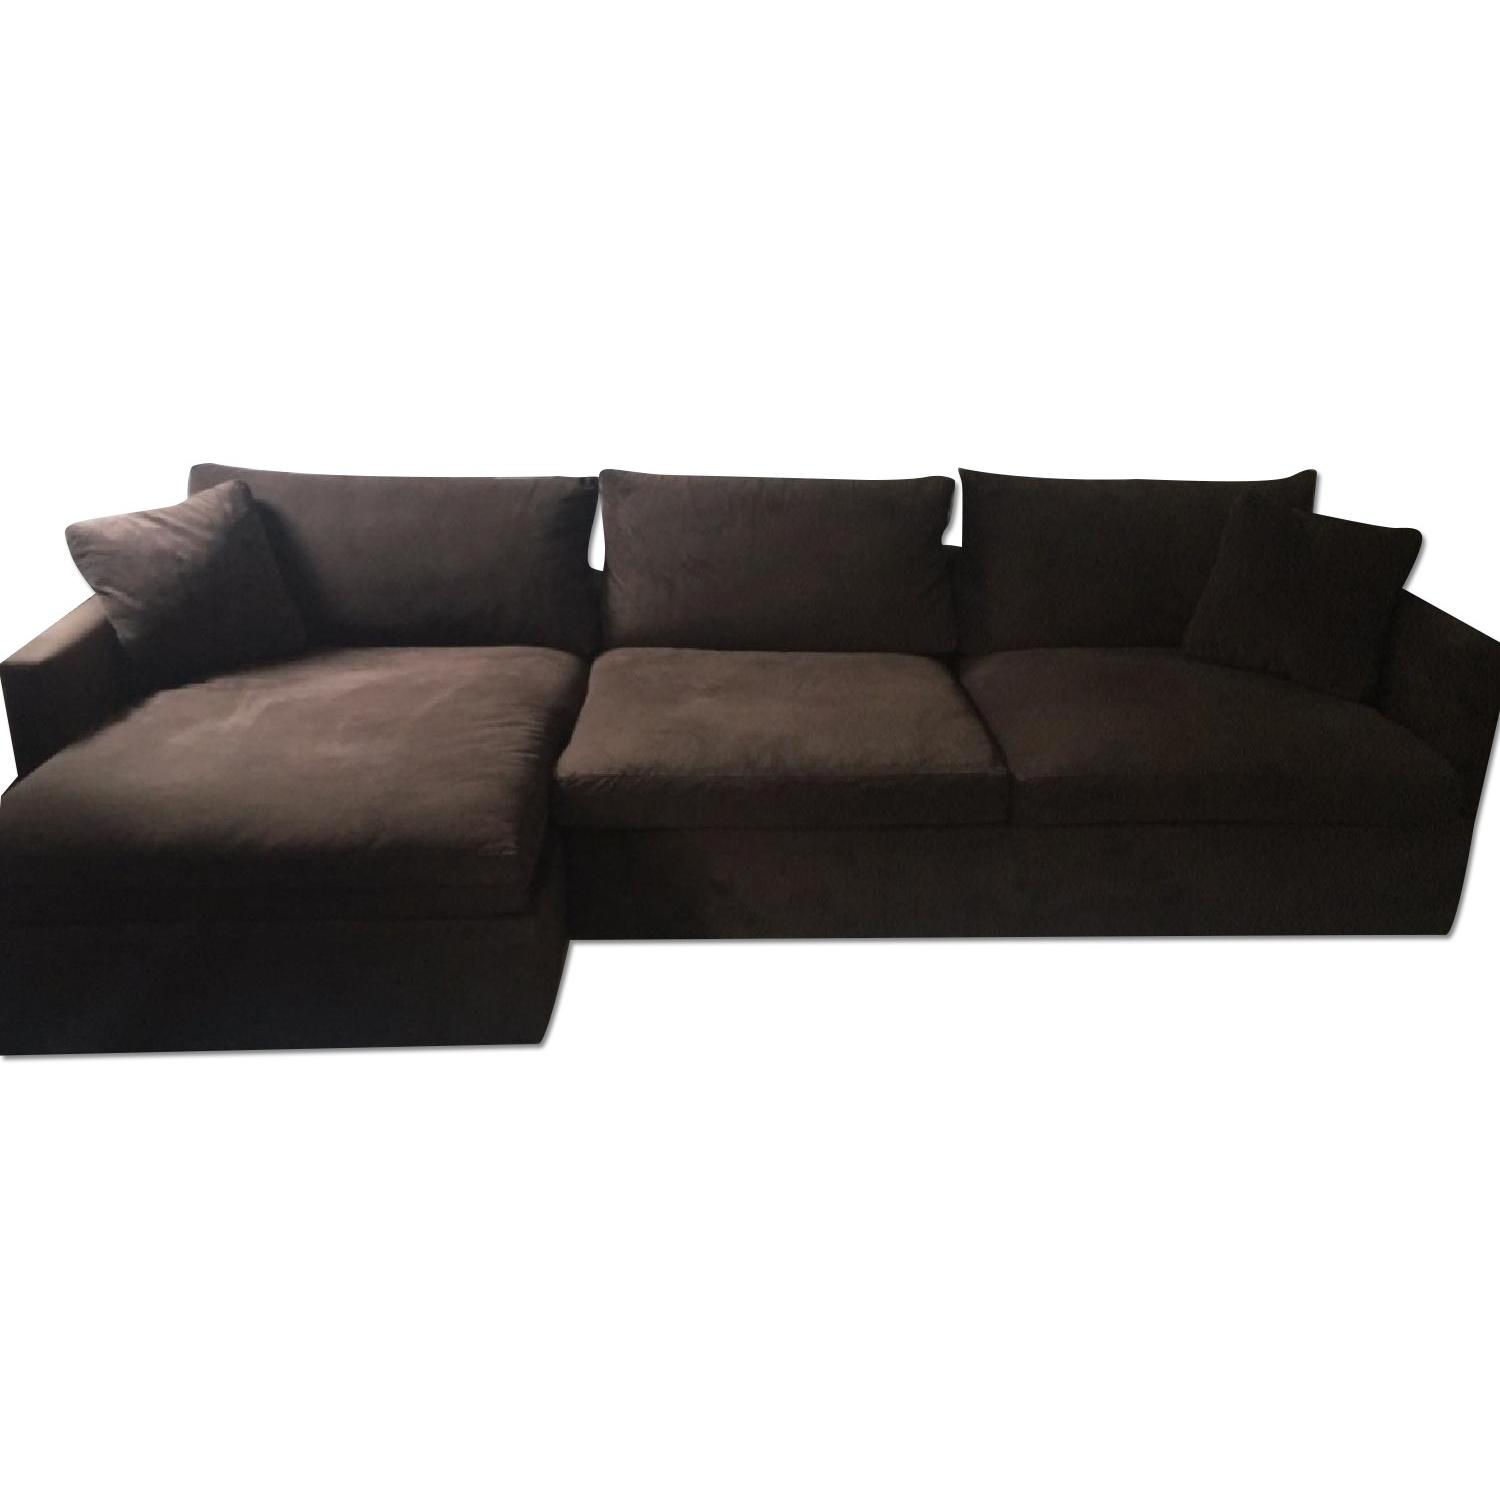 Lounge Sofa Crate And Barrel hmmi